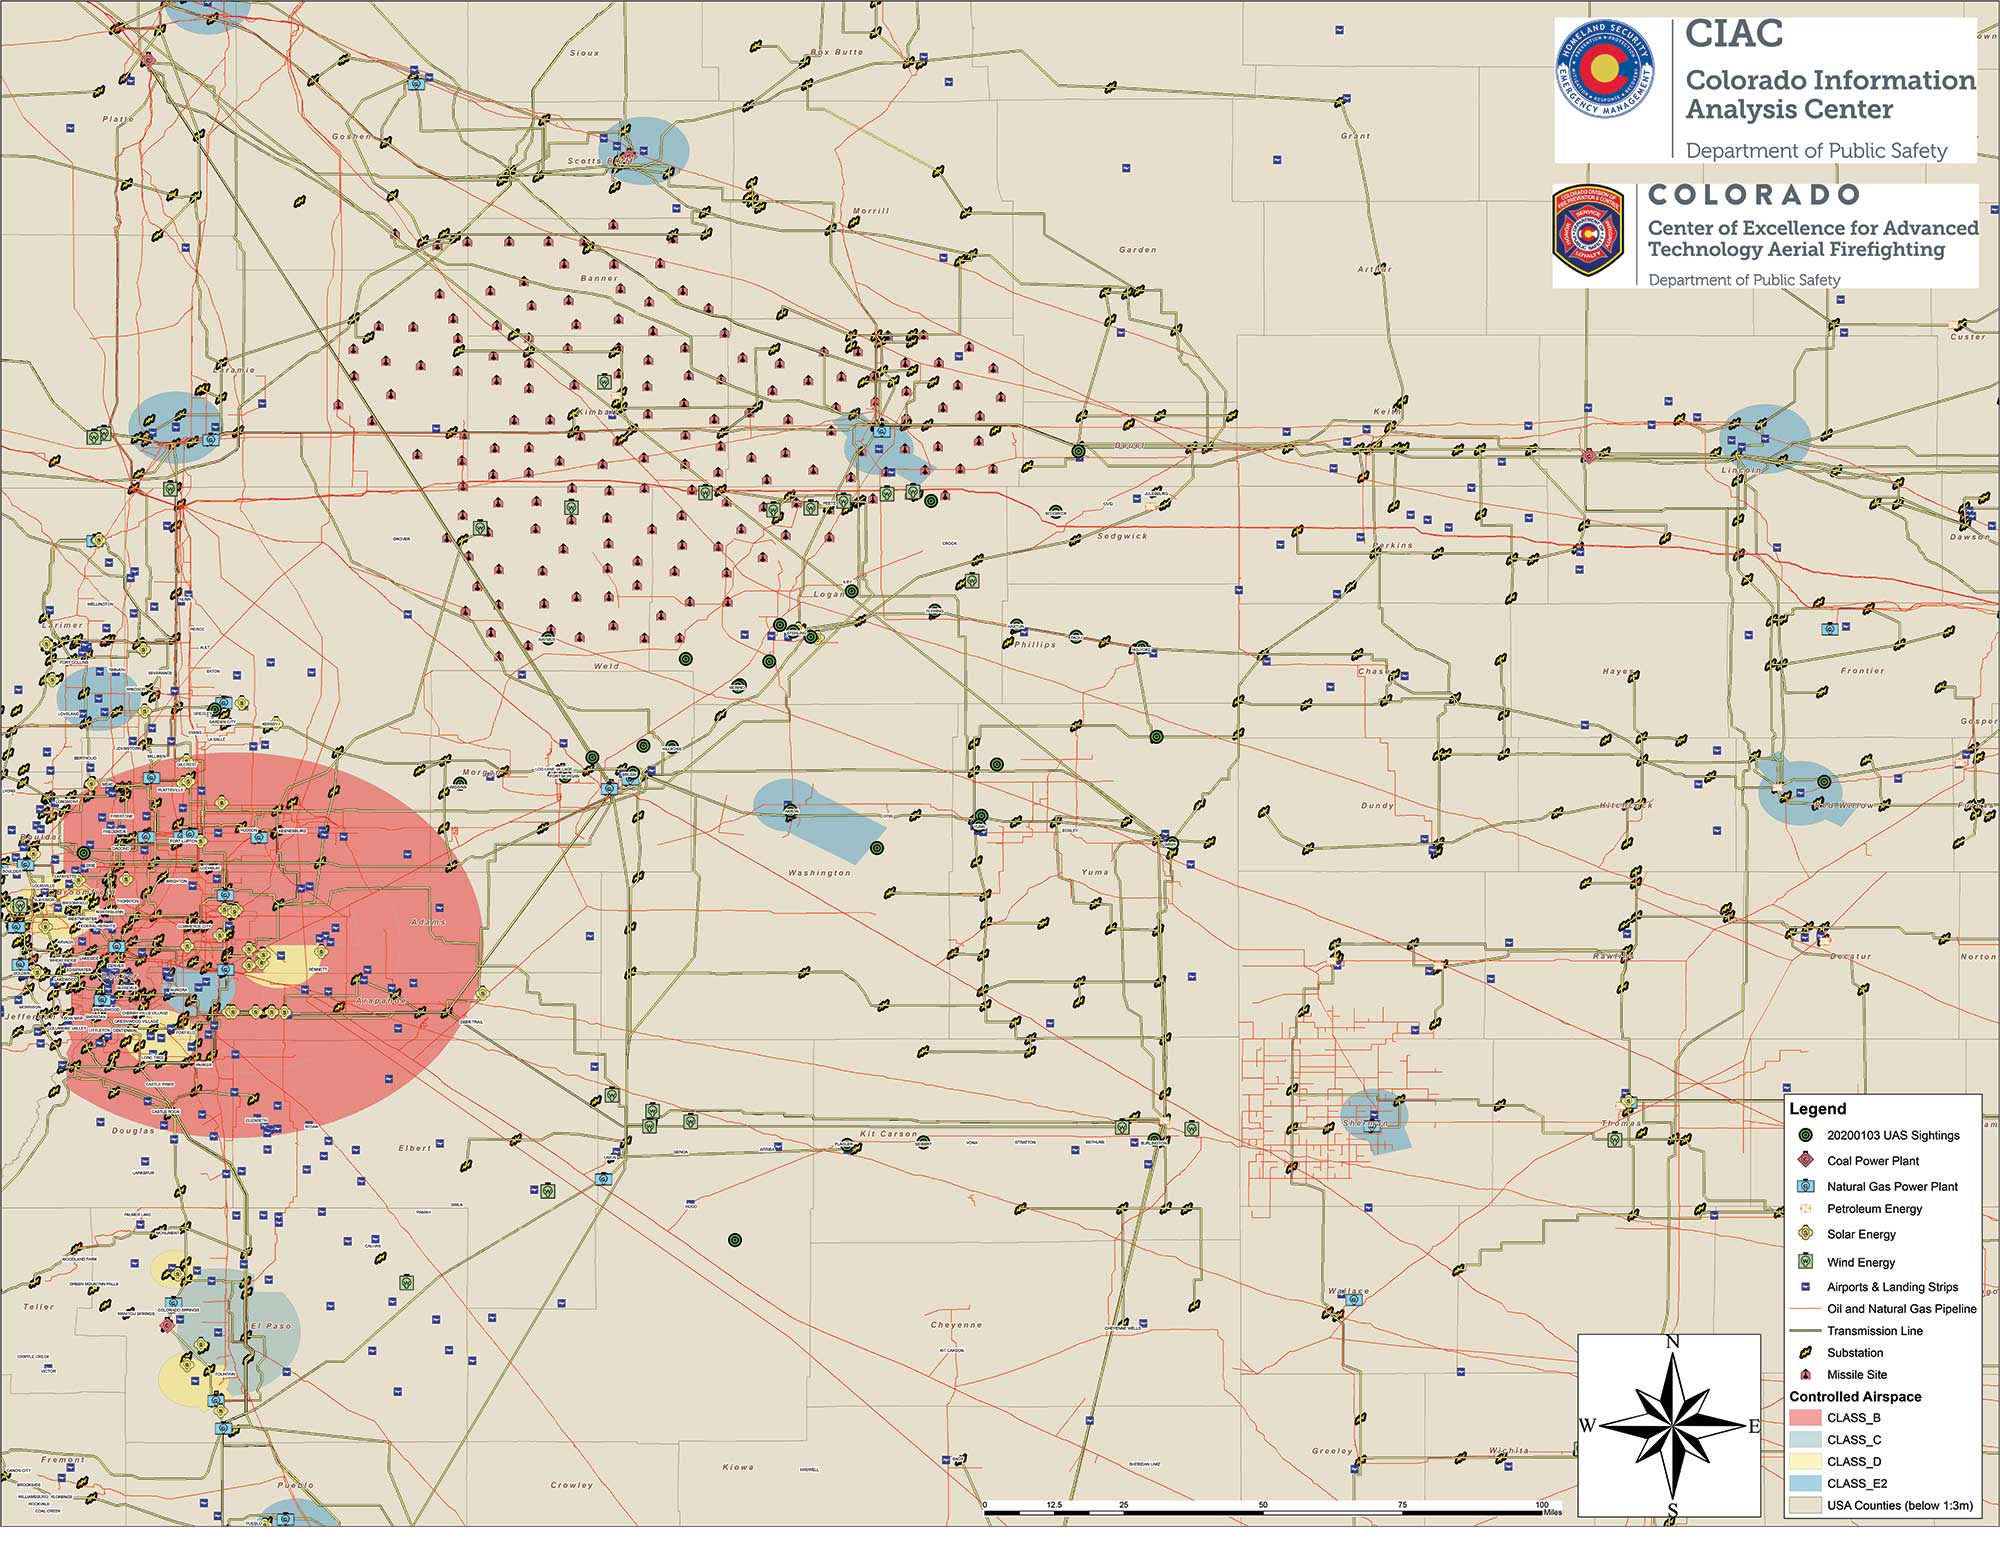 This DFPC map, obtained by FOX31 TV, shows possible locations of drone sightings along with power plants, pipelines and missile sites. (Map: Colorado Division of Fire Prevention and Control)